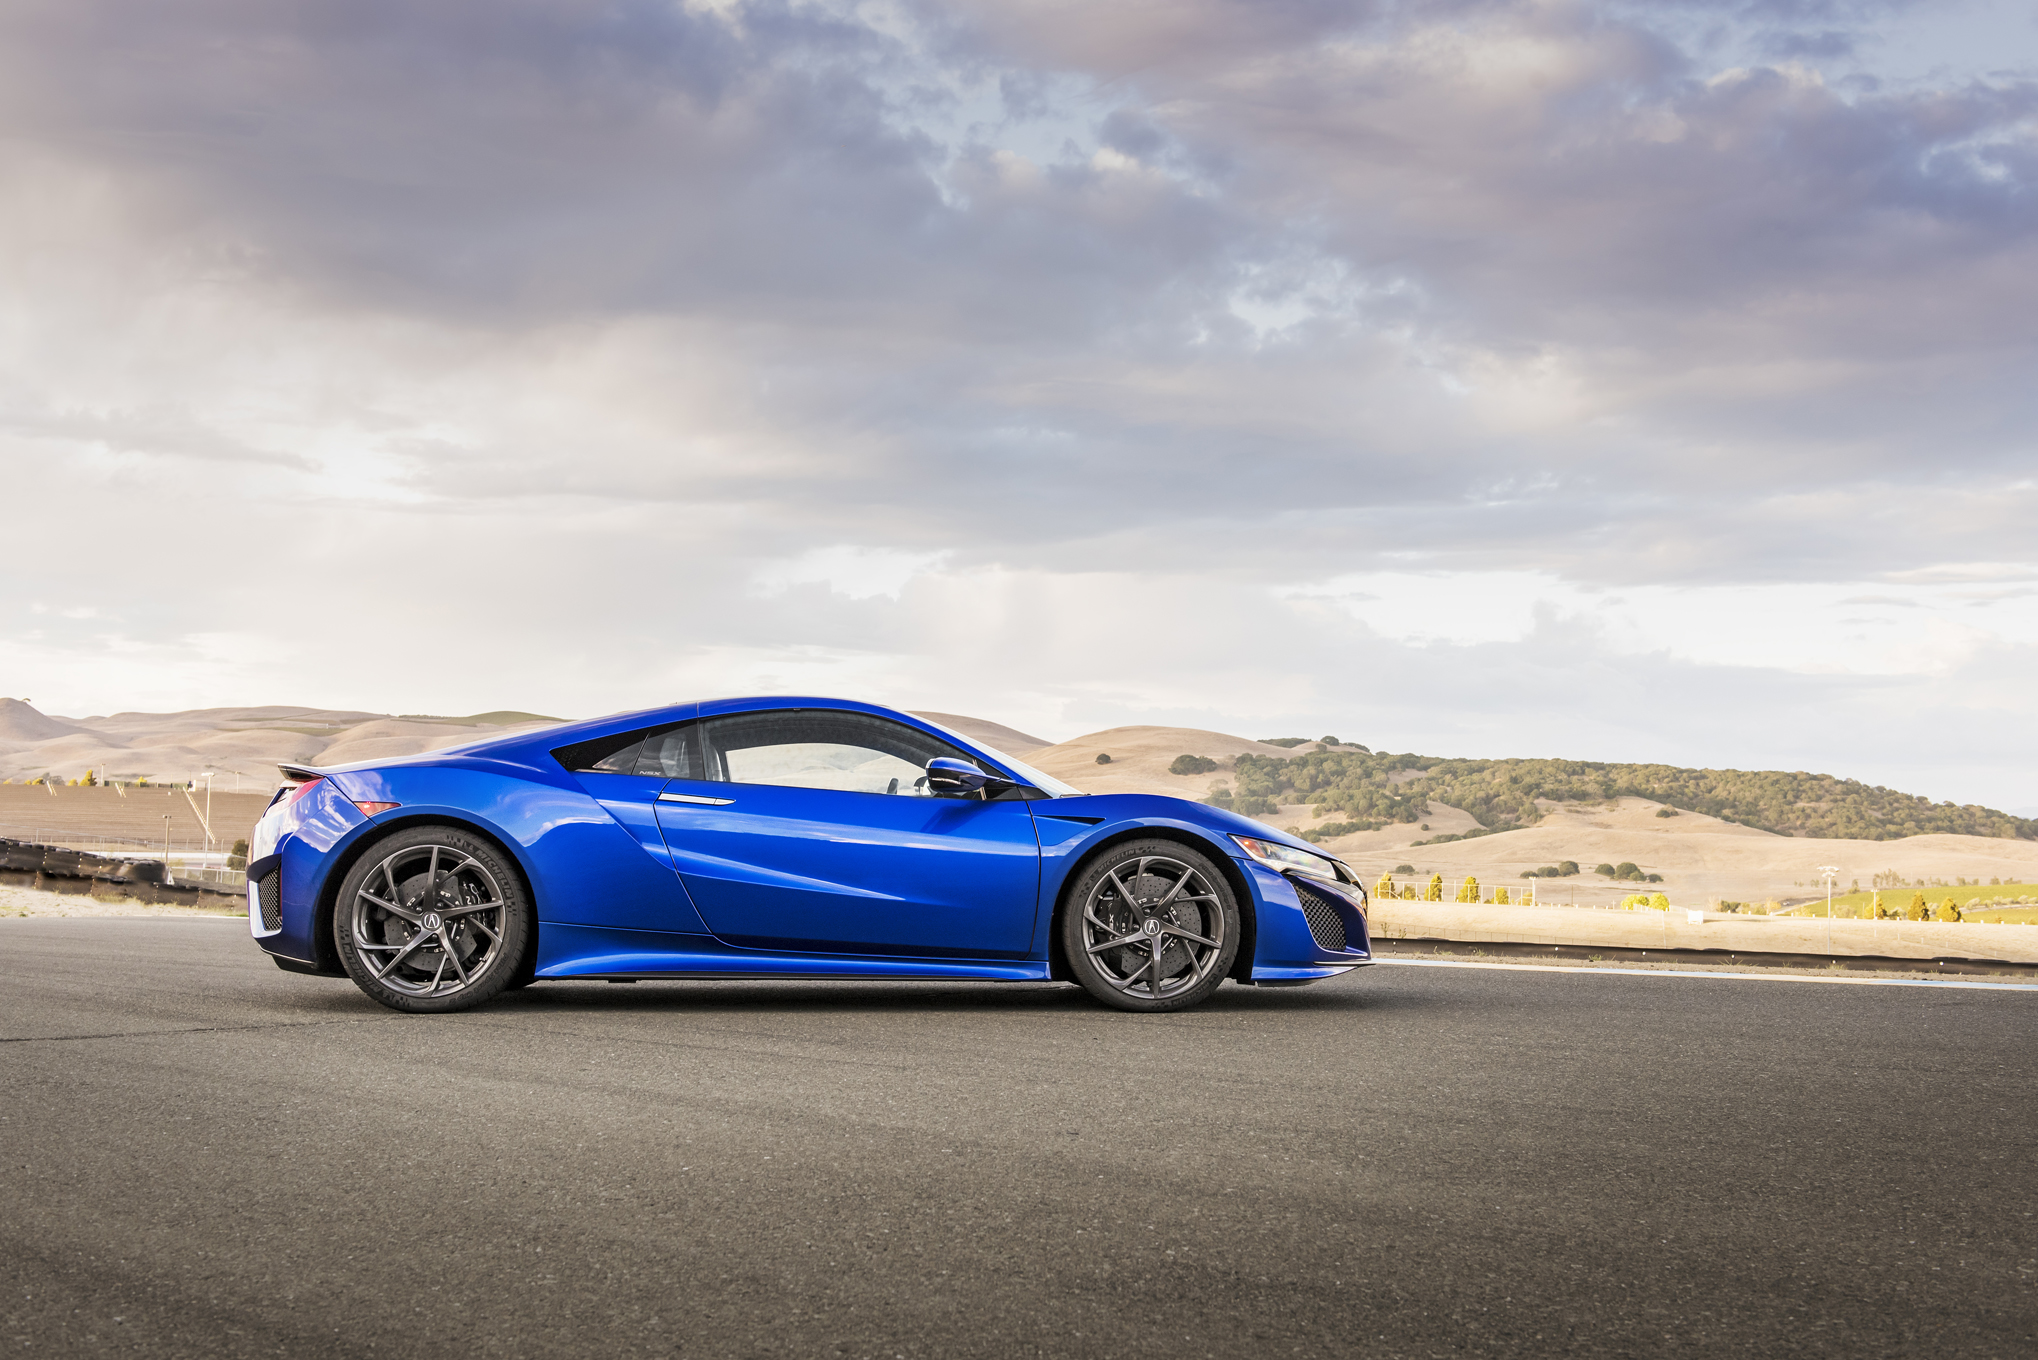 2017 acura nsx first drive reviews stun world with definitive supercar. Black Bedroom Furniture Sets. Home Design Ideas